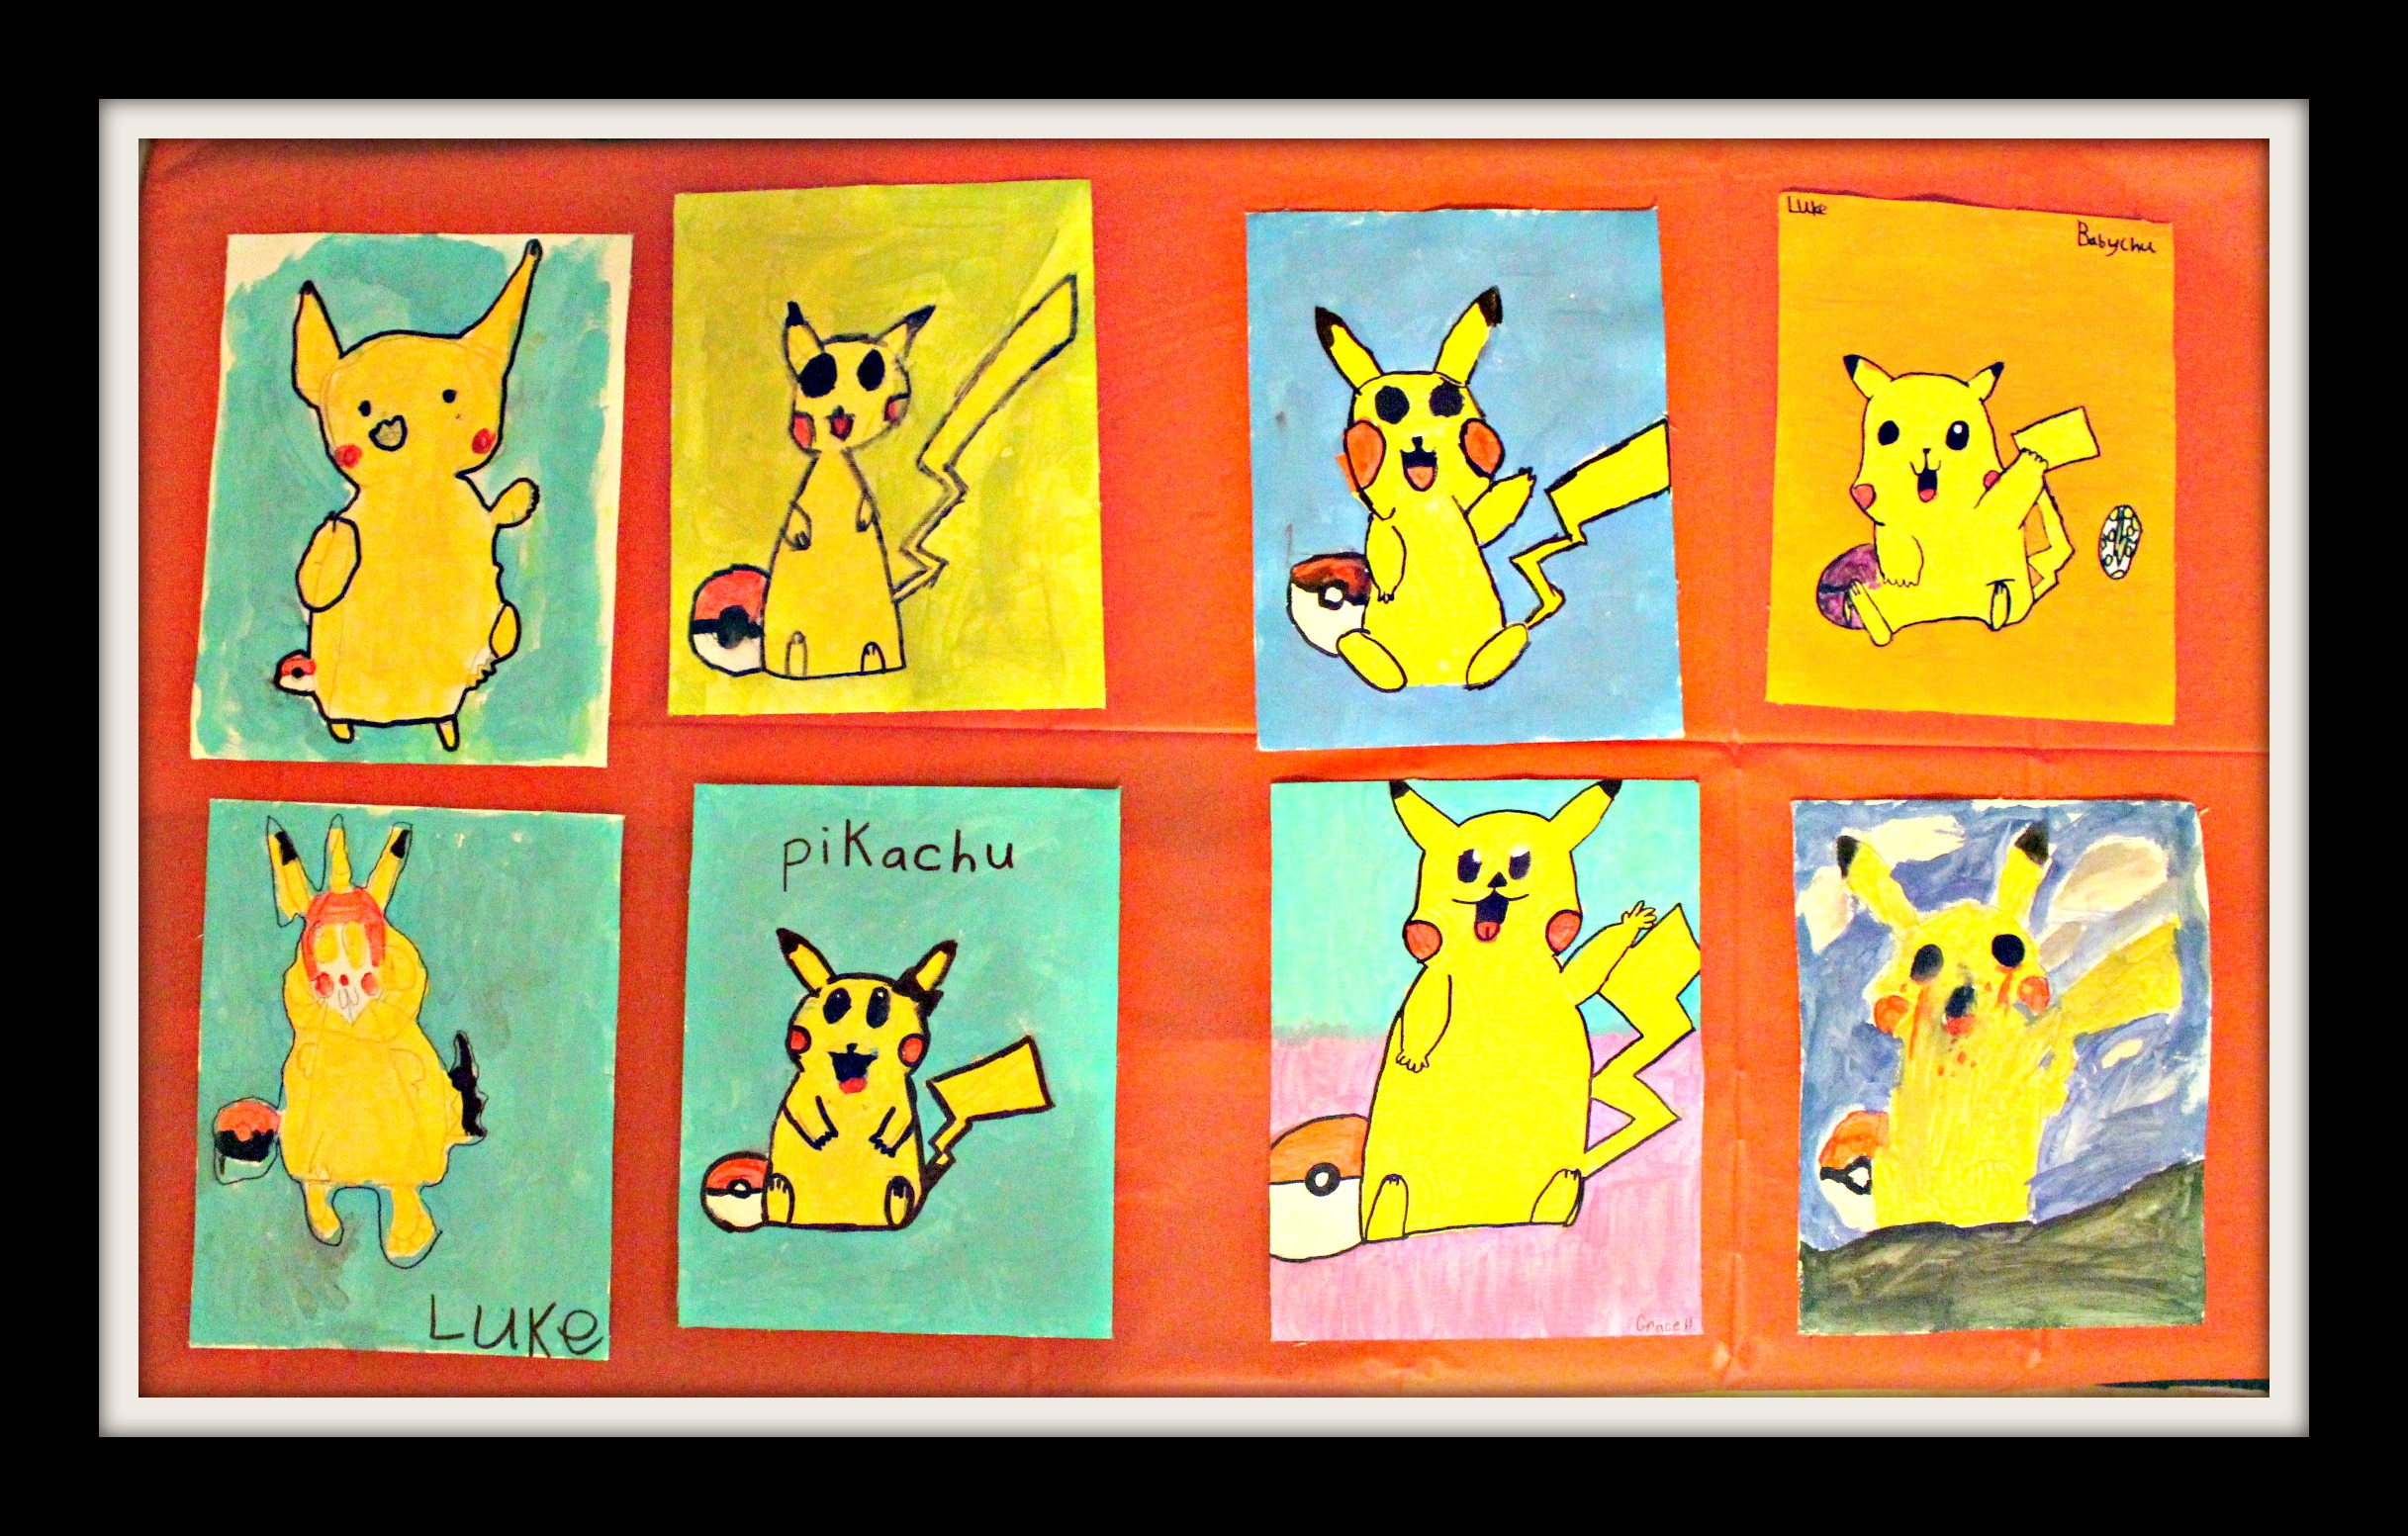 Painted Pikachu pARTy Nov 26.jpg